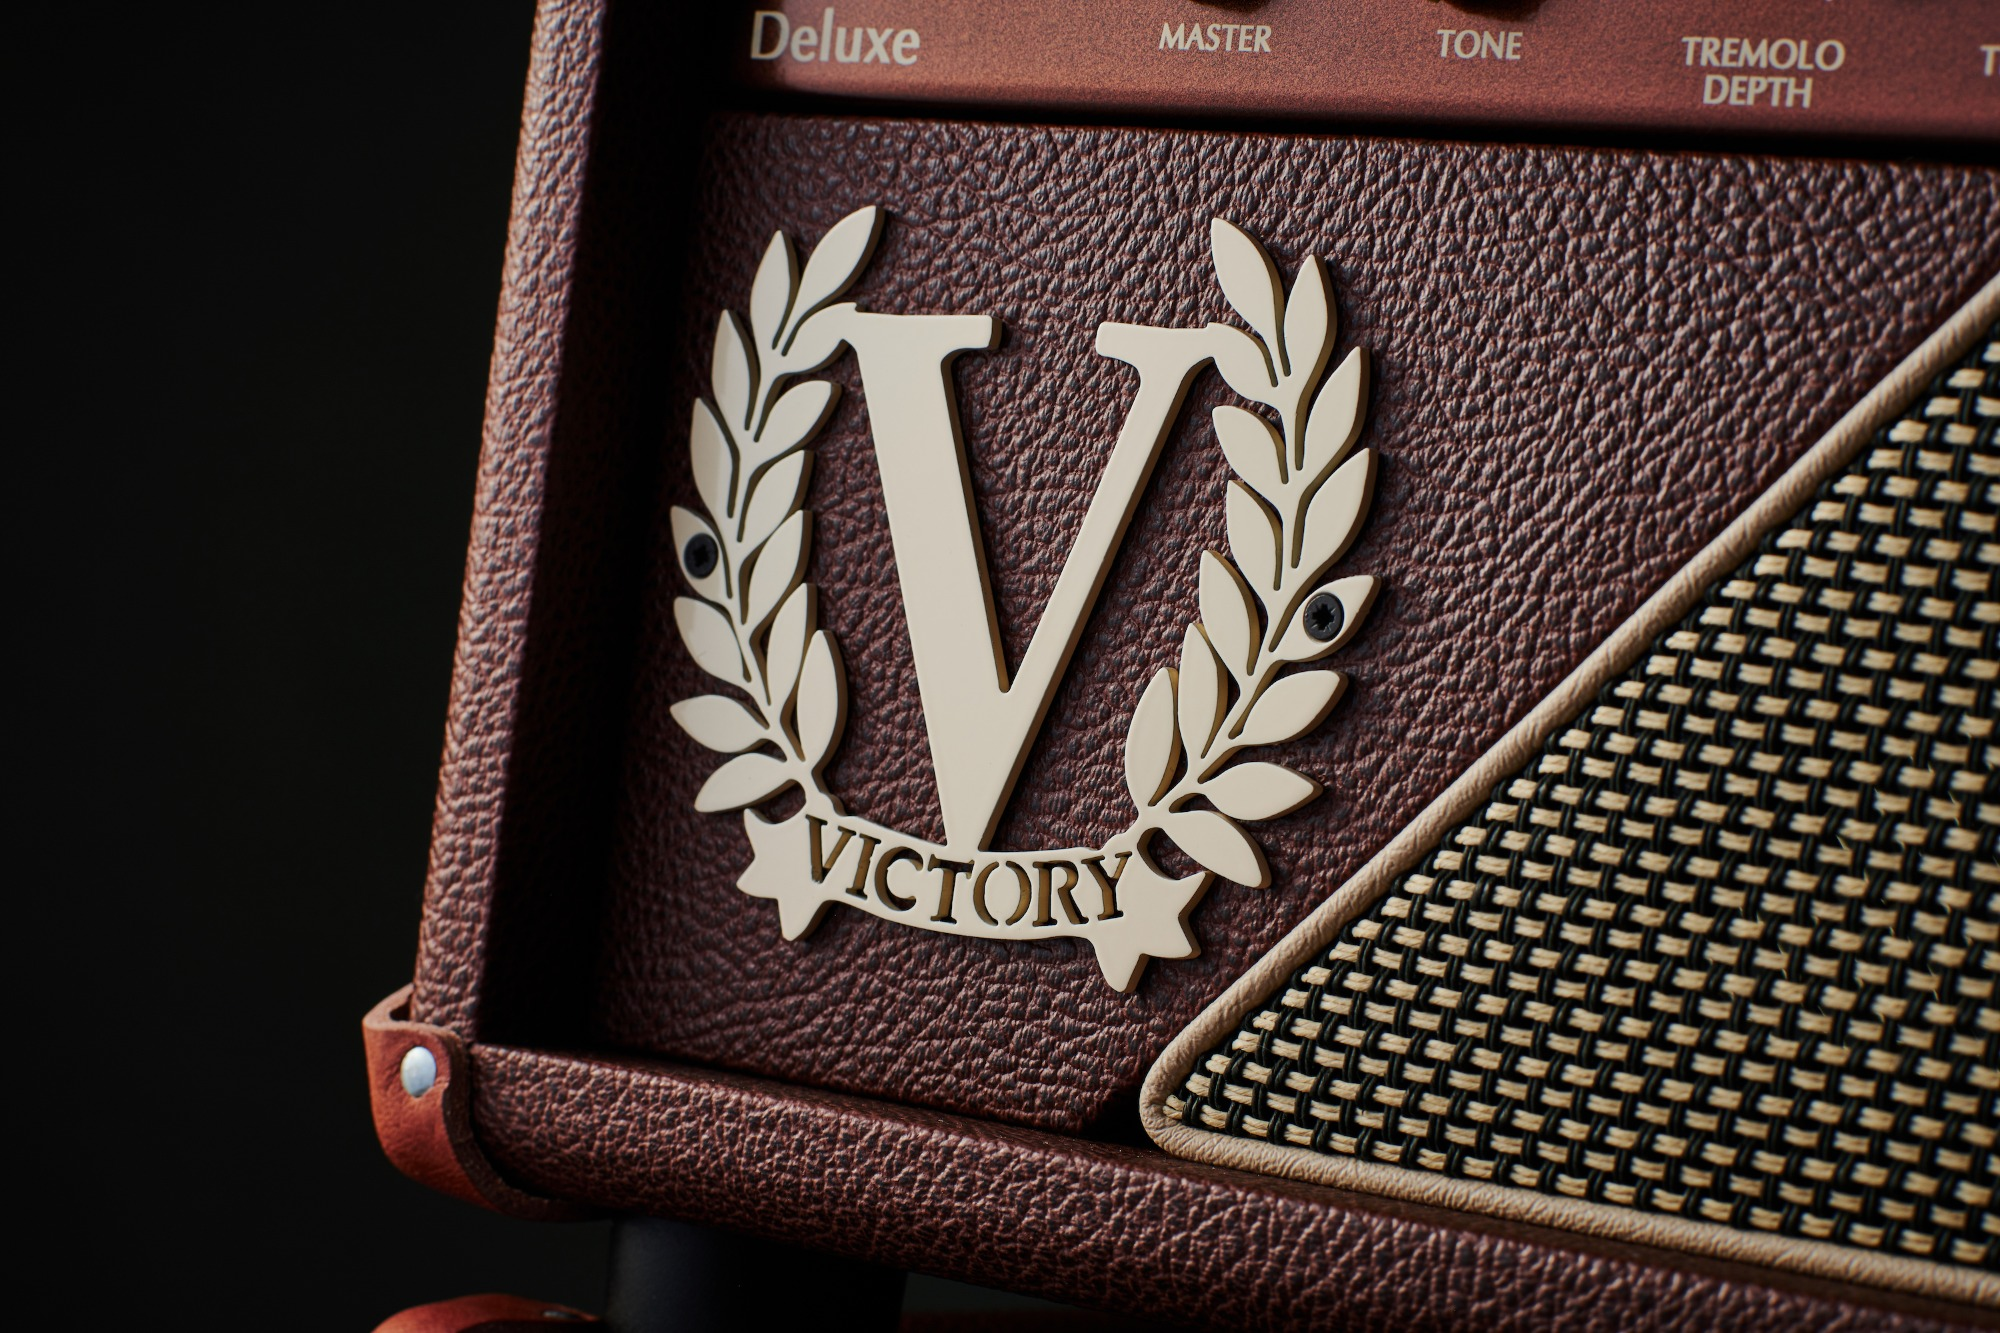 Vic_VC35Deluxe_48_edited